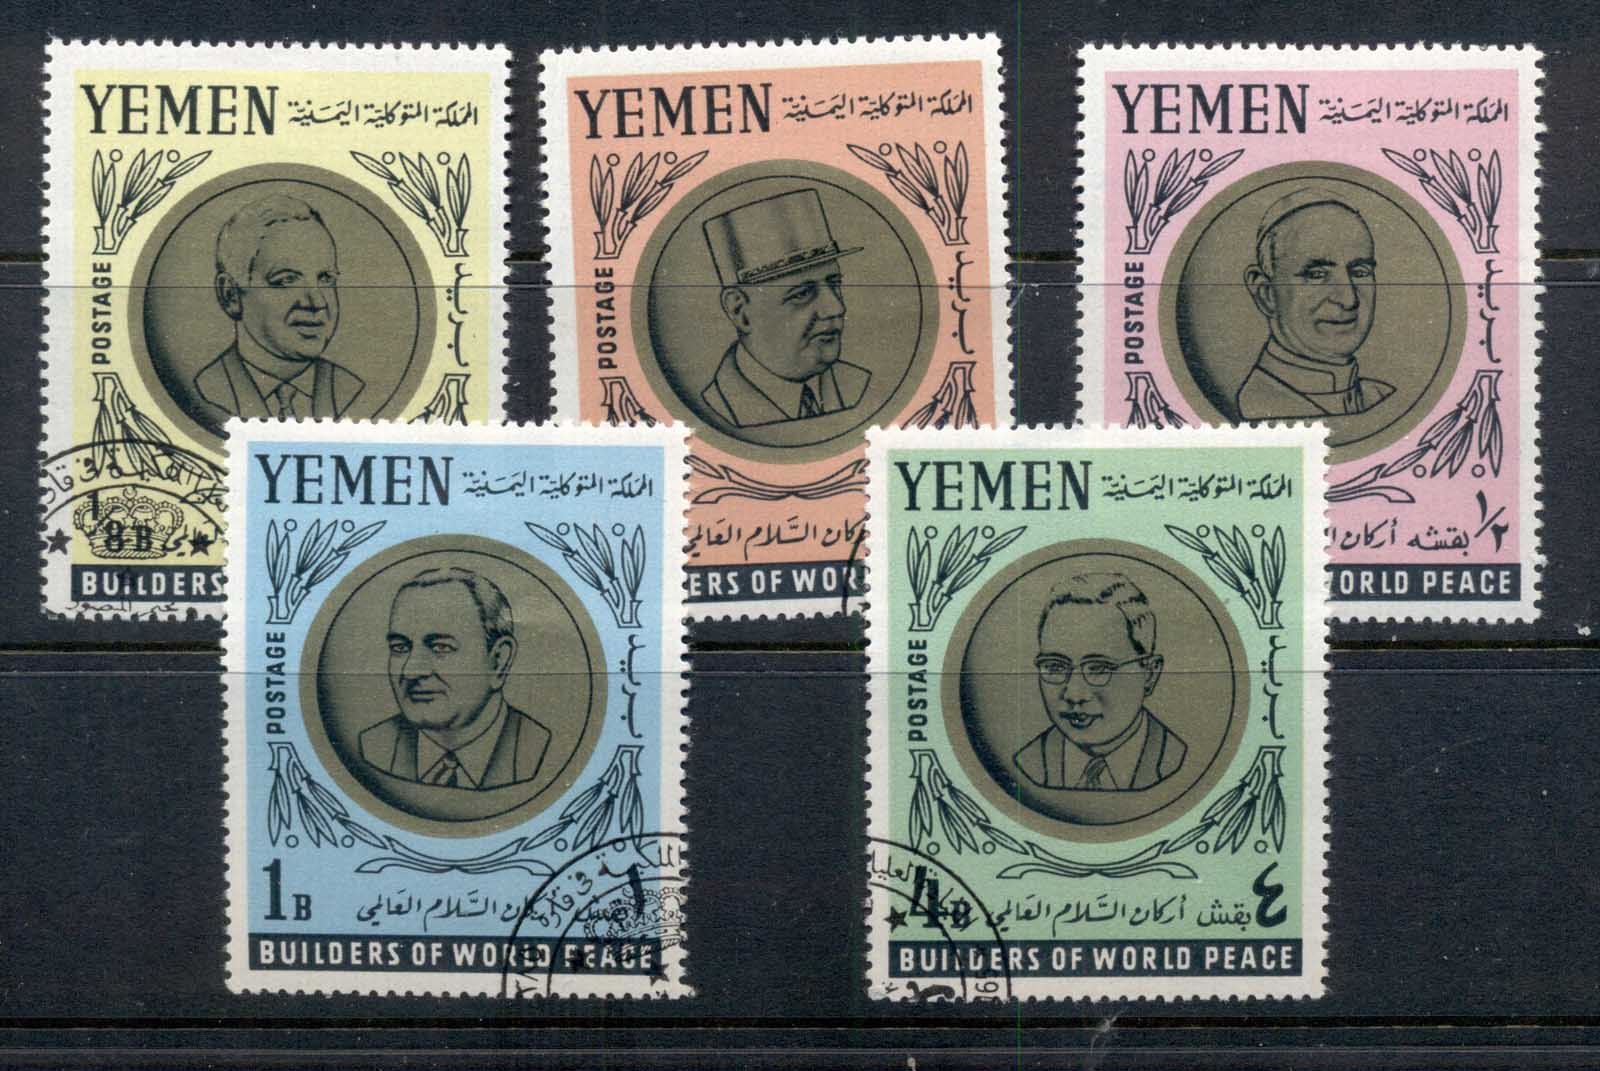 Yemen Kingdom 1966 Mi#211-214 Famous Personalities of the 20th cent. CTO